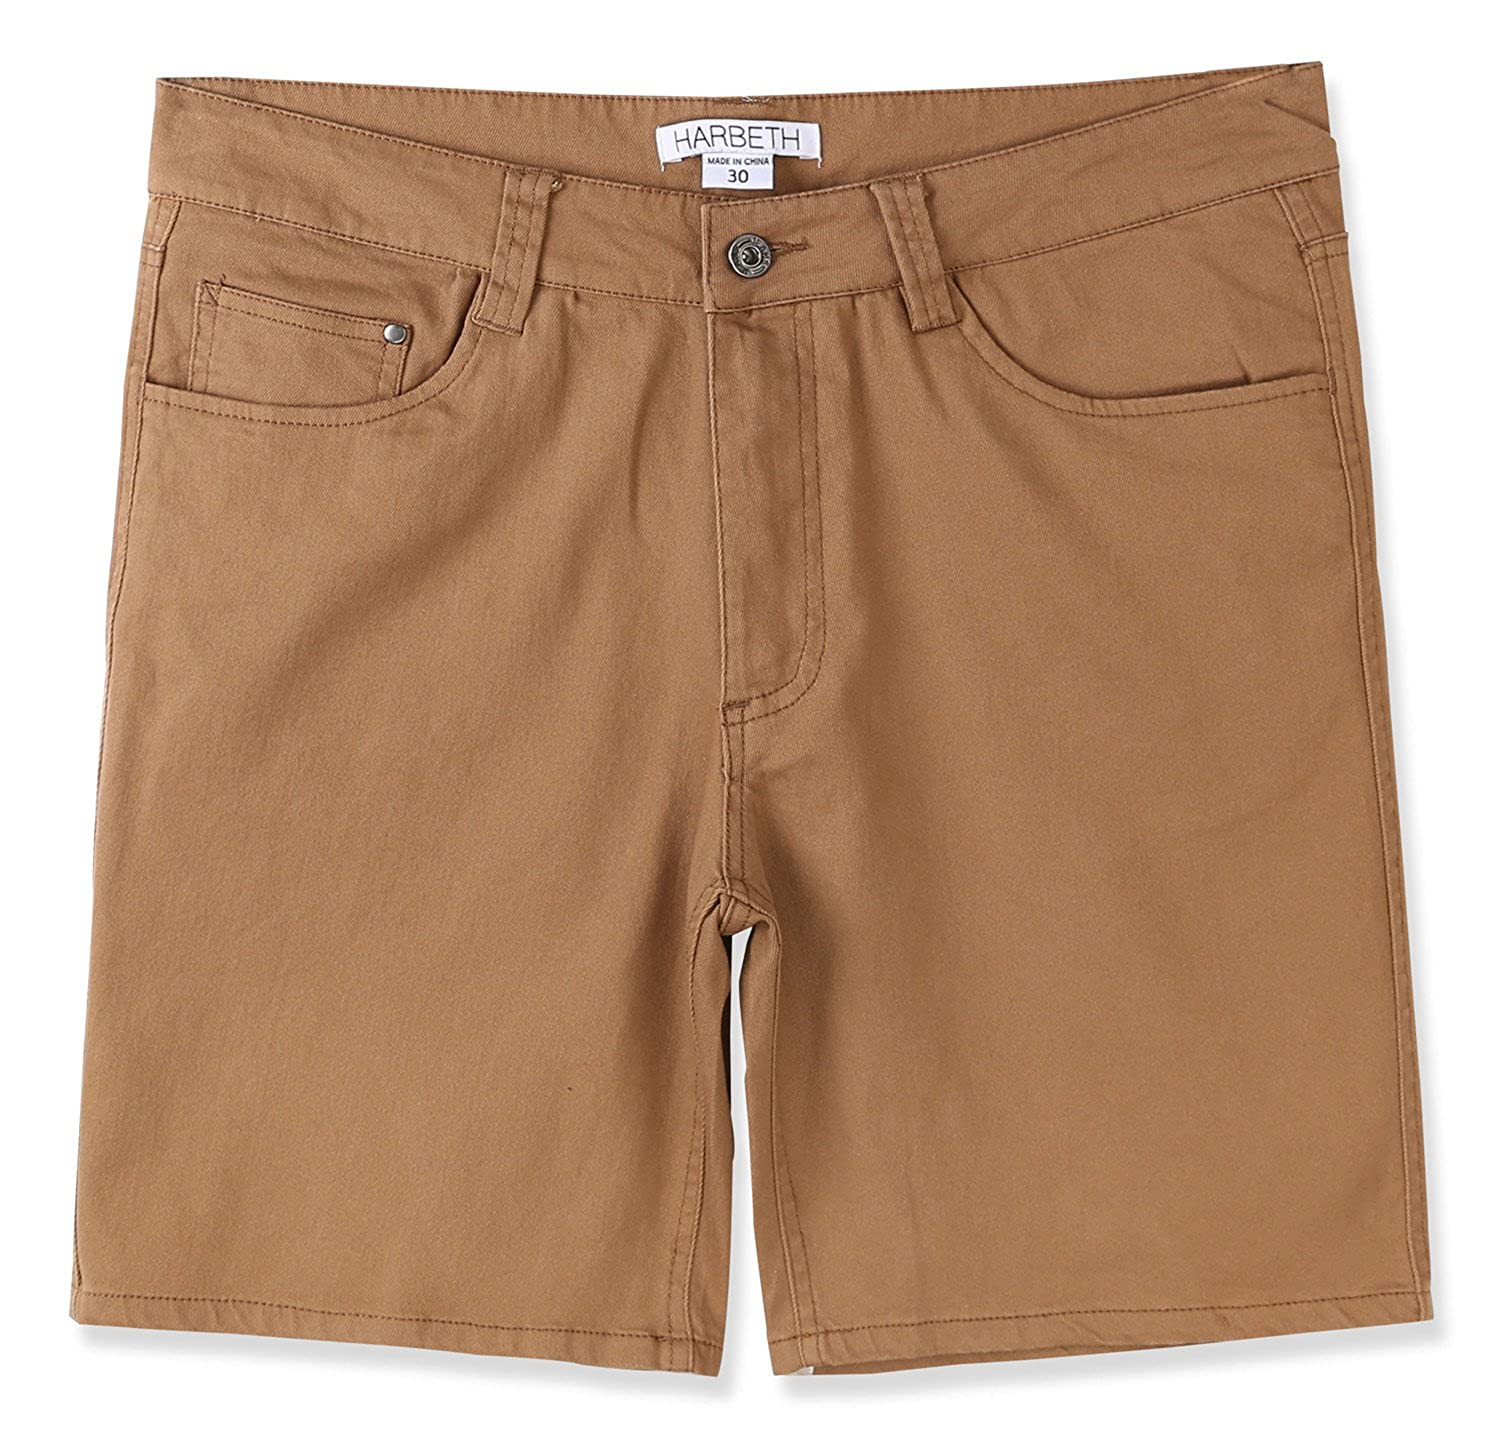 HARBETH Men's Casual Classic Fit Flat-Front Stretch Solid Chino Walk Short